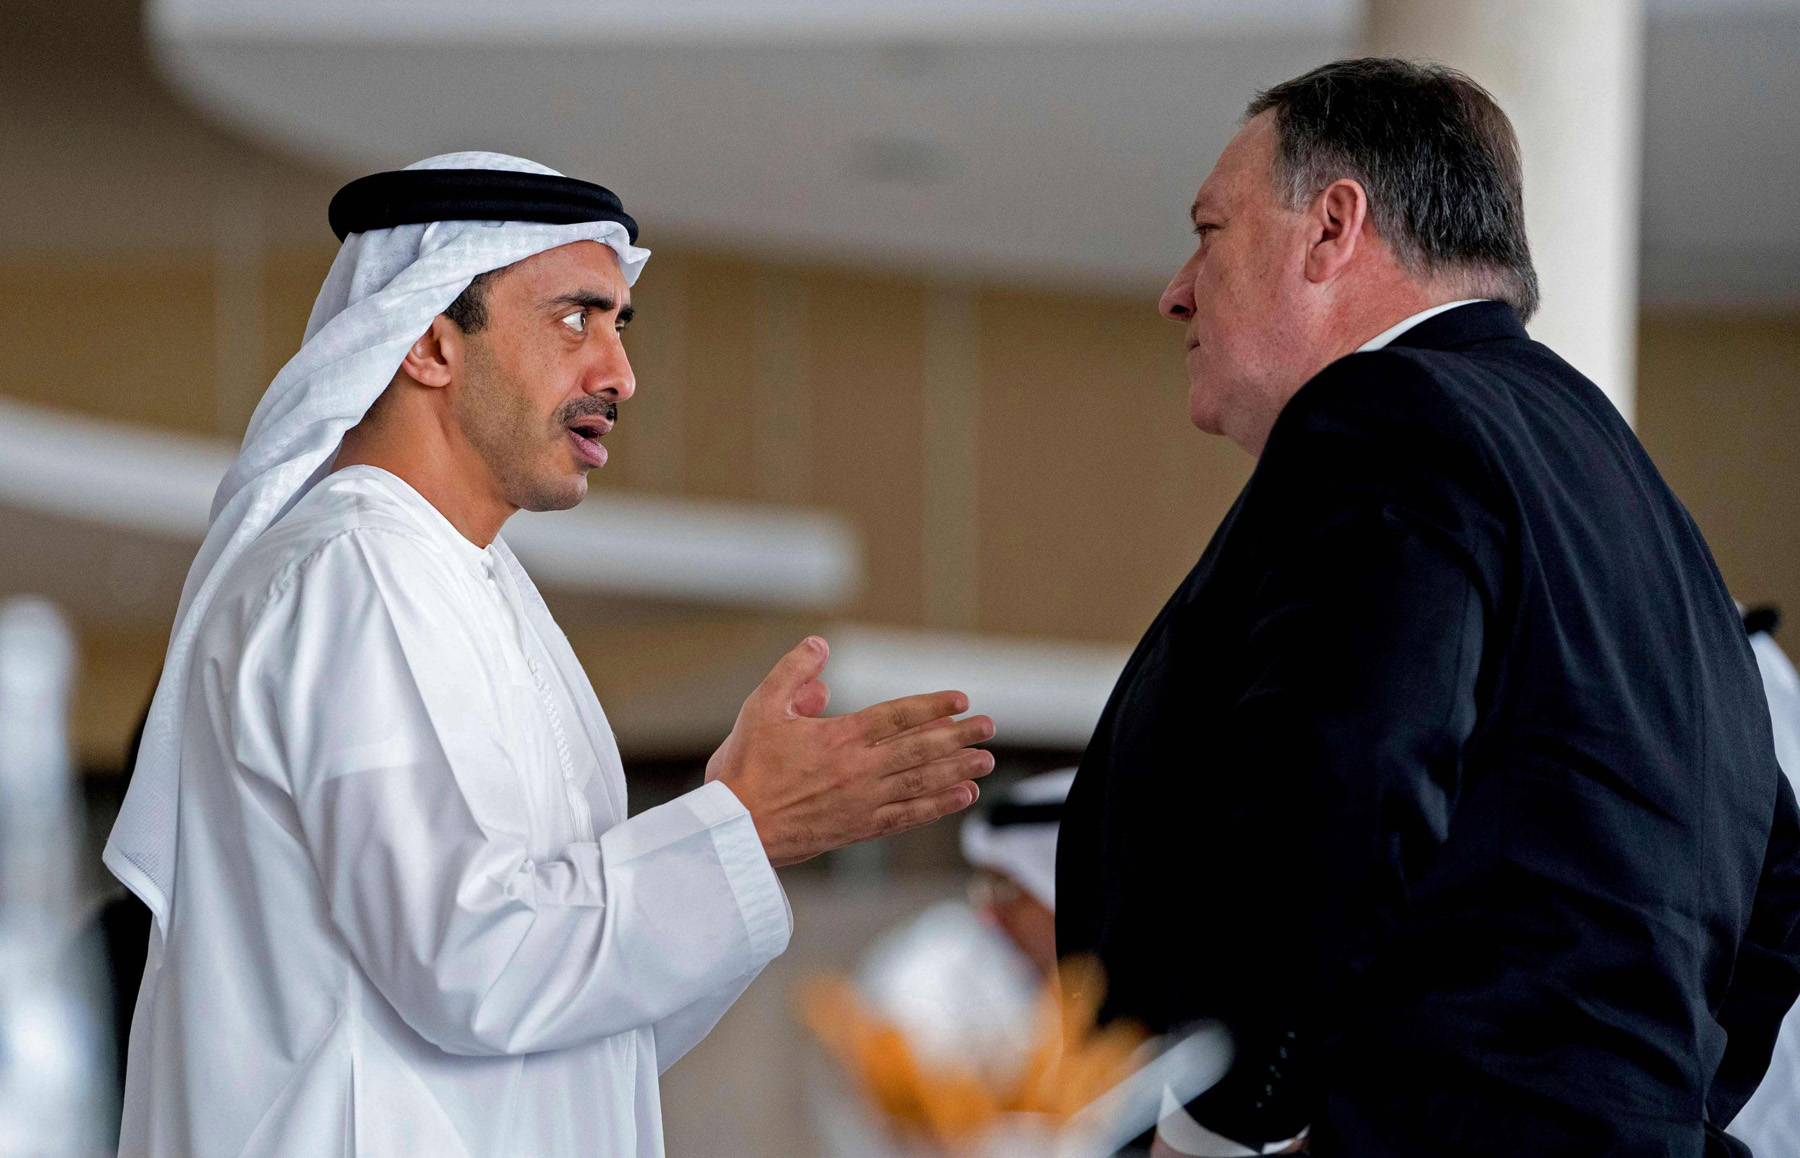 US Secretary of State Mike Pompeo (R) and UAE Foreign Minister Sheikh Abdullah bin Zayed Al Nahyan in Abu Dhabi, on July 10. (AFP)